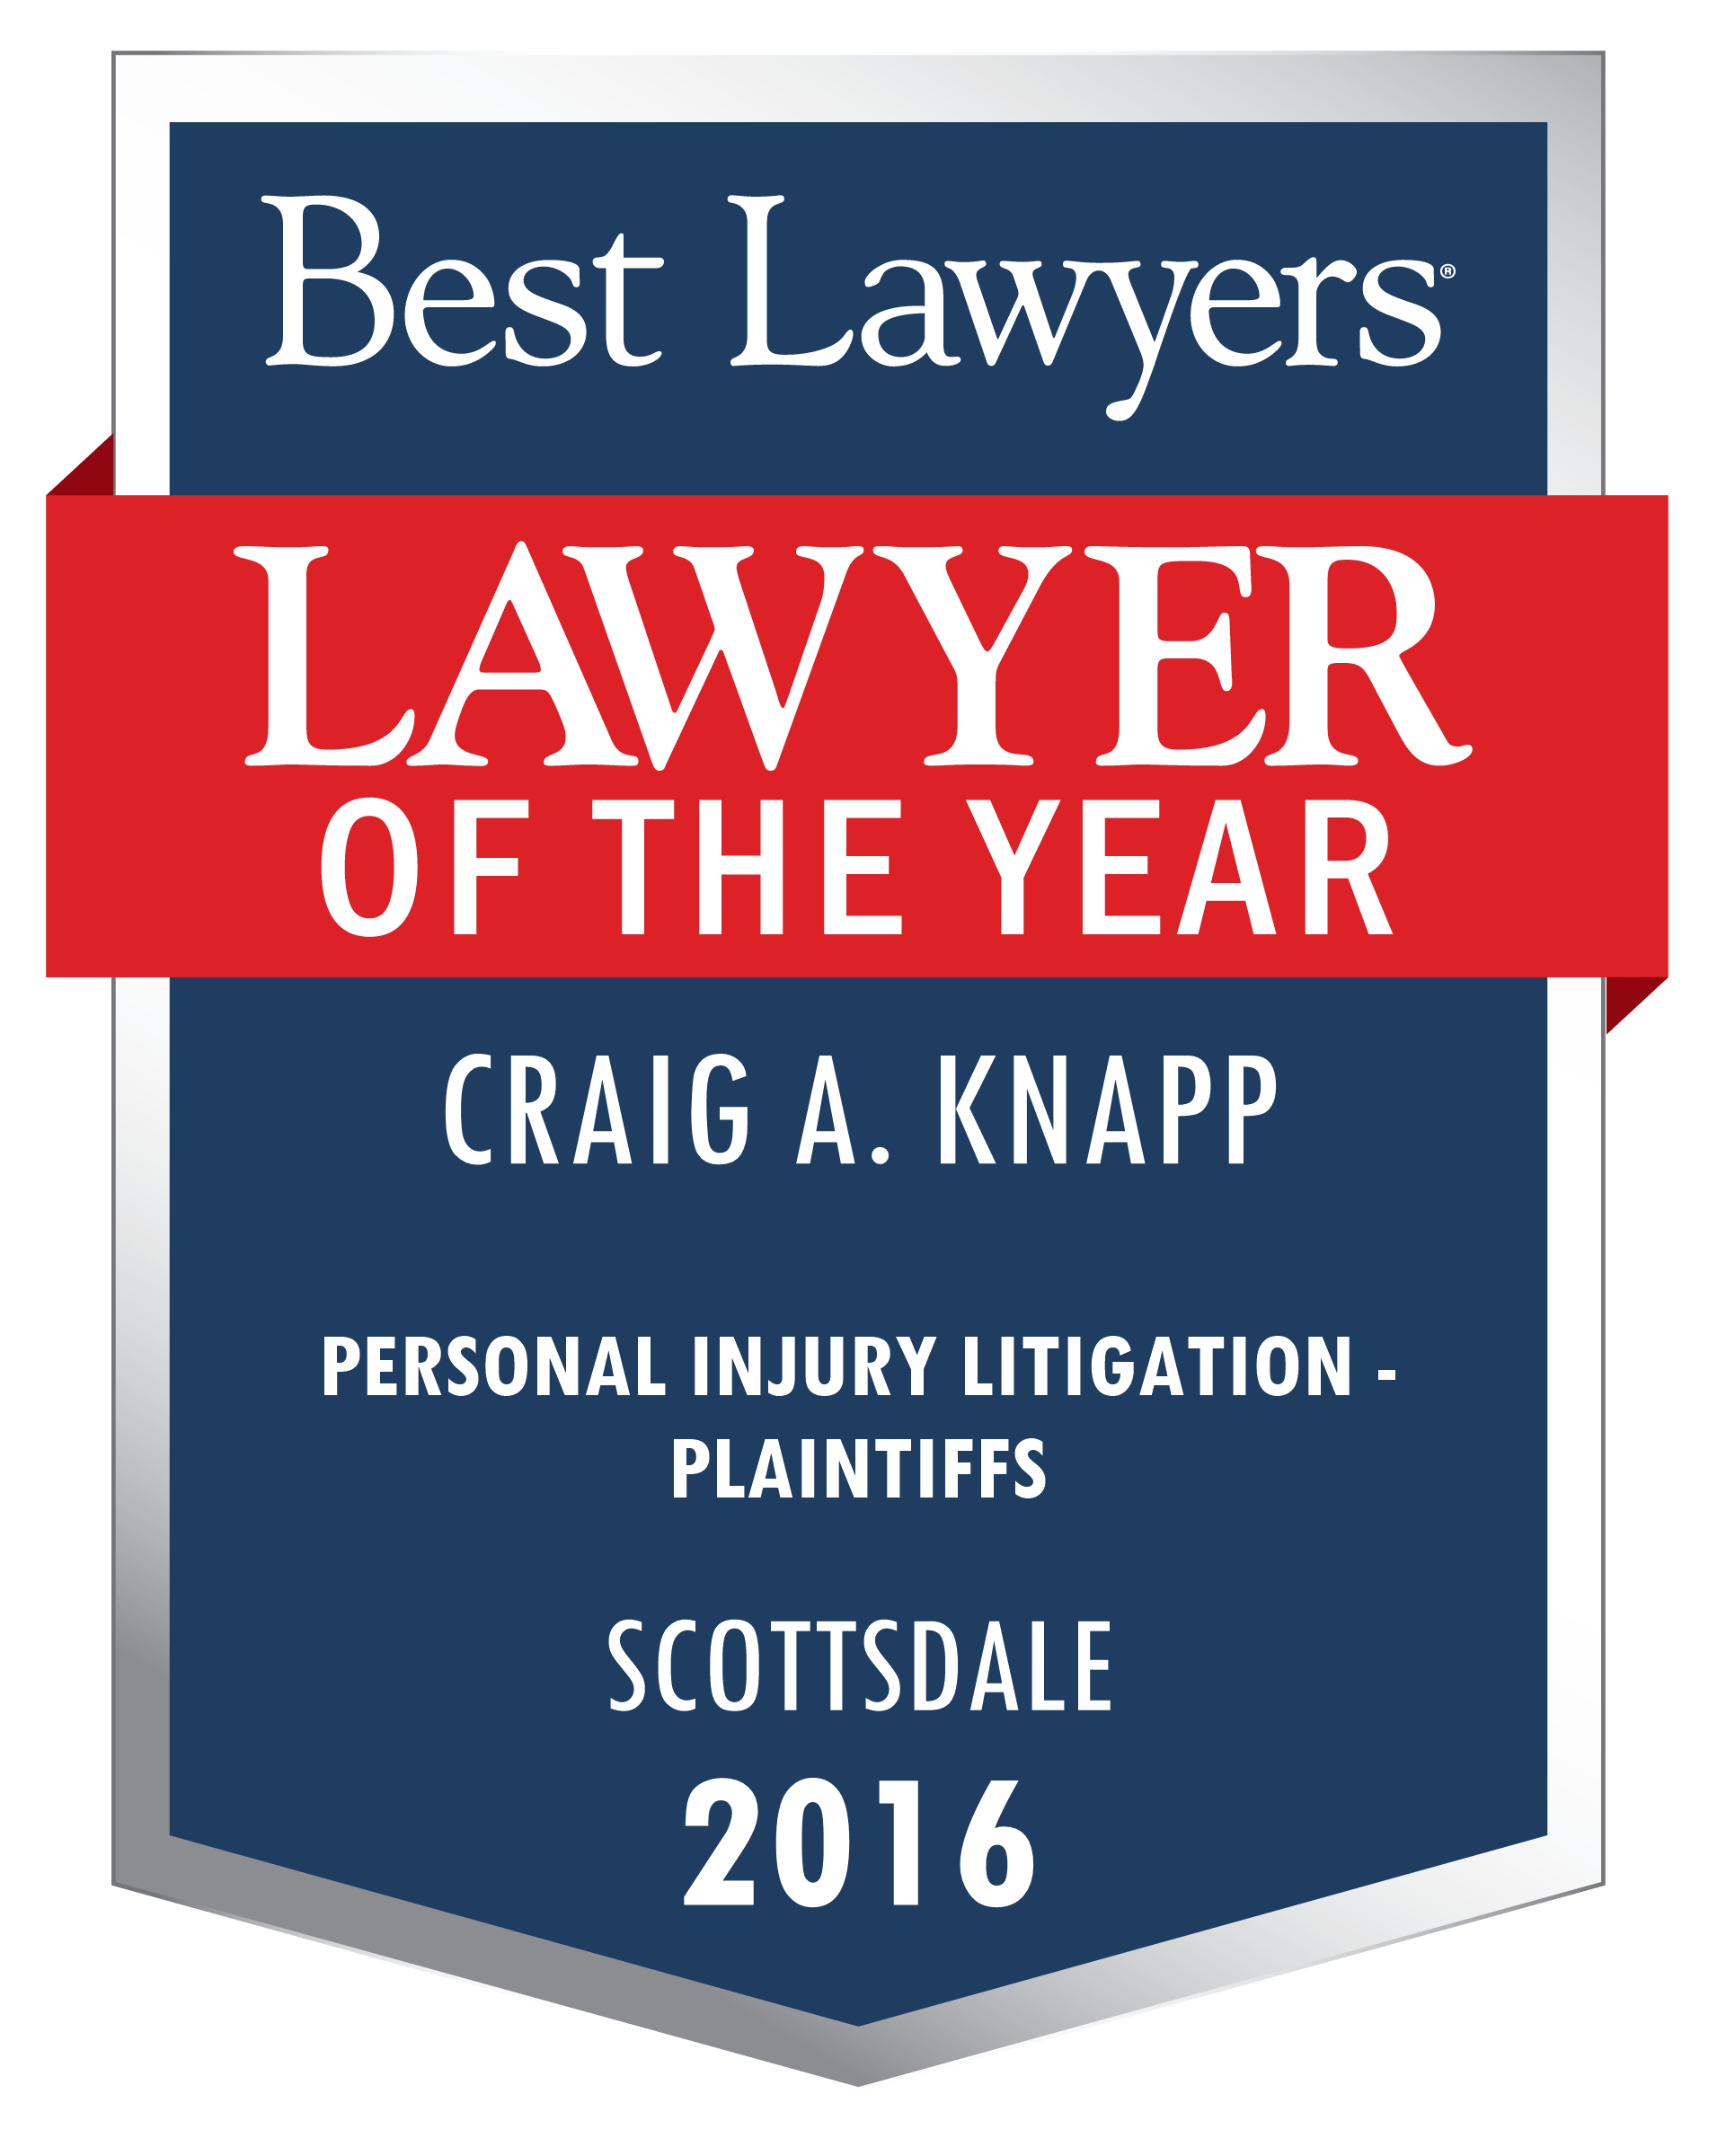 Best Lawyers - Lawyer of the Year 2016